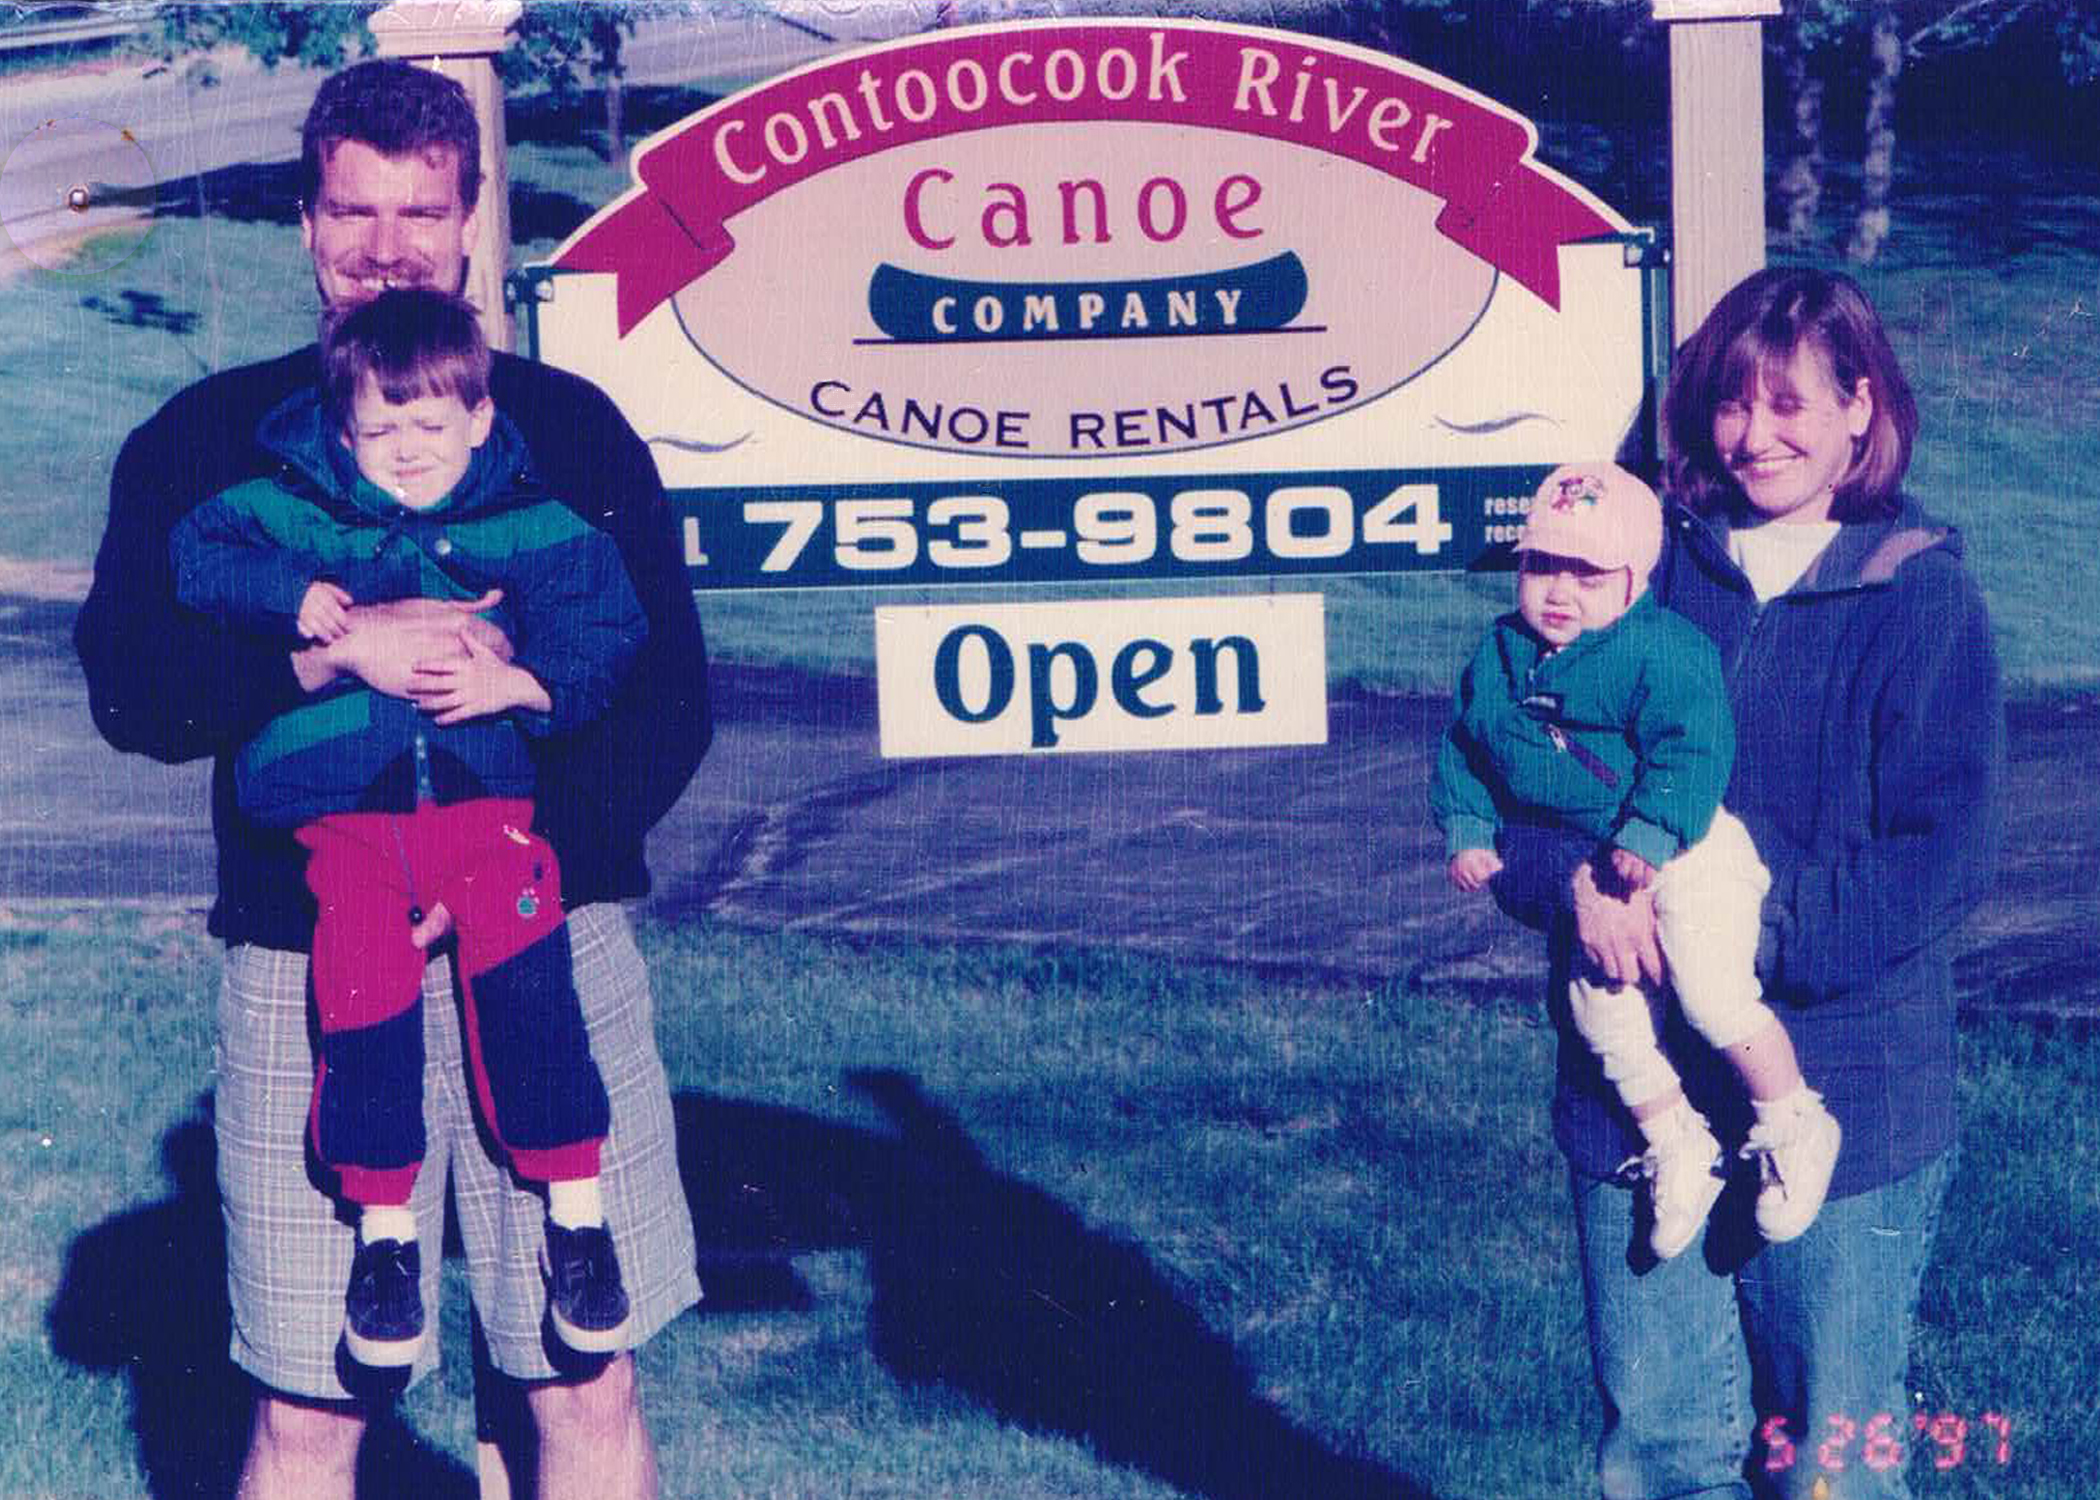 The Malfait family on the first weekend of business in May of 1997. Both our children are now out of college and in professional careers.